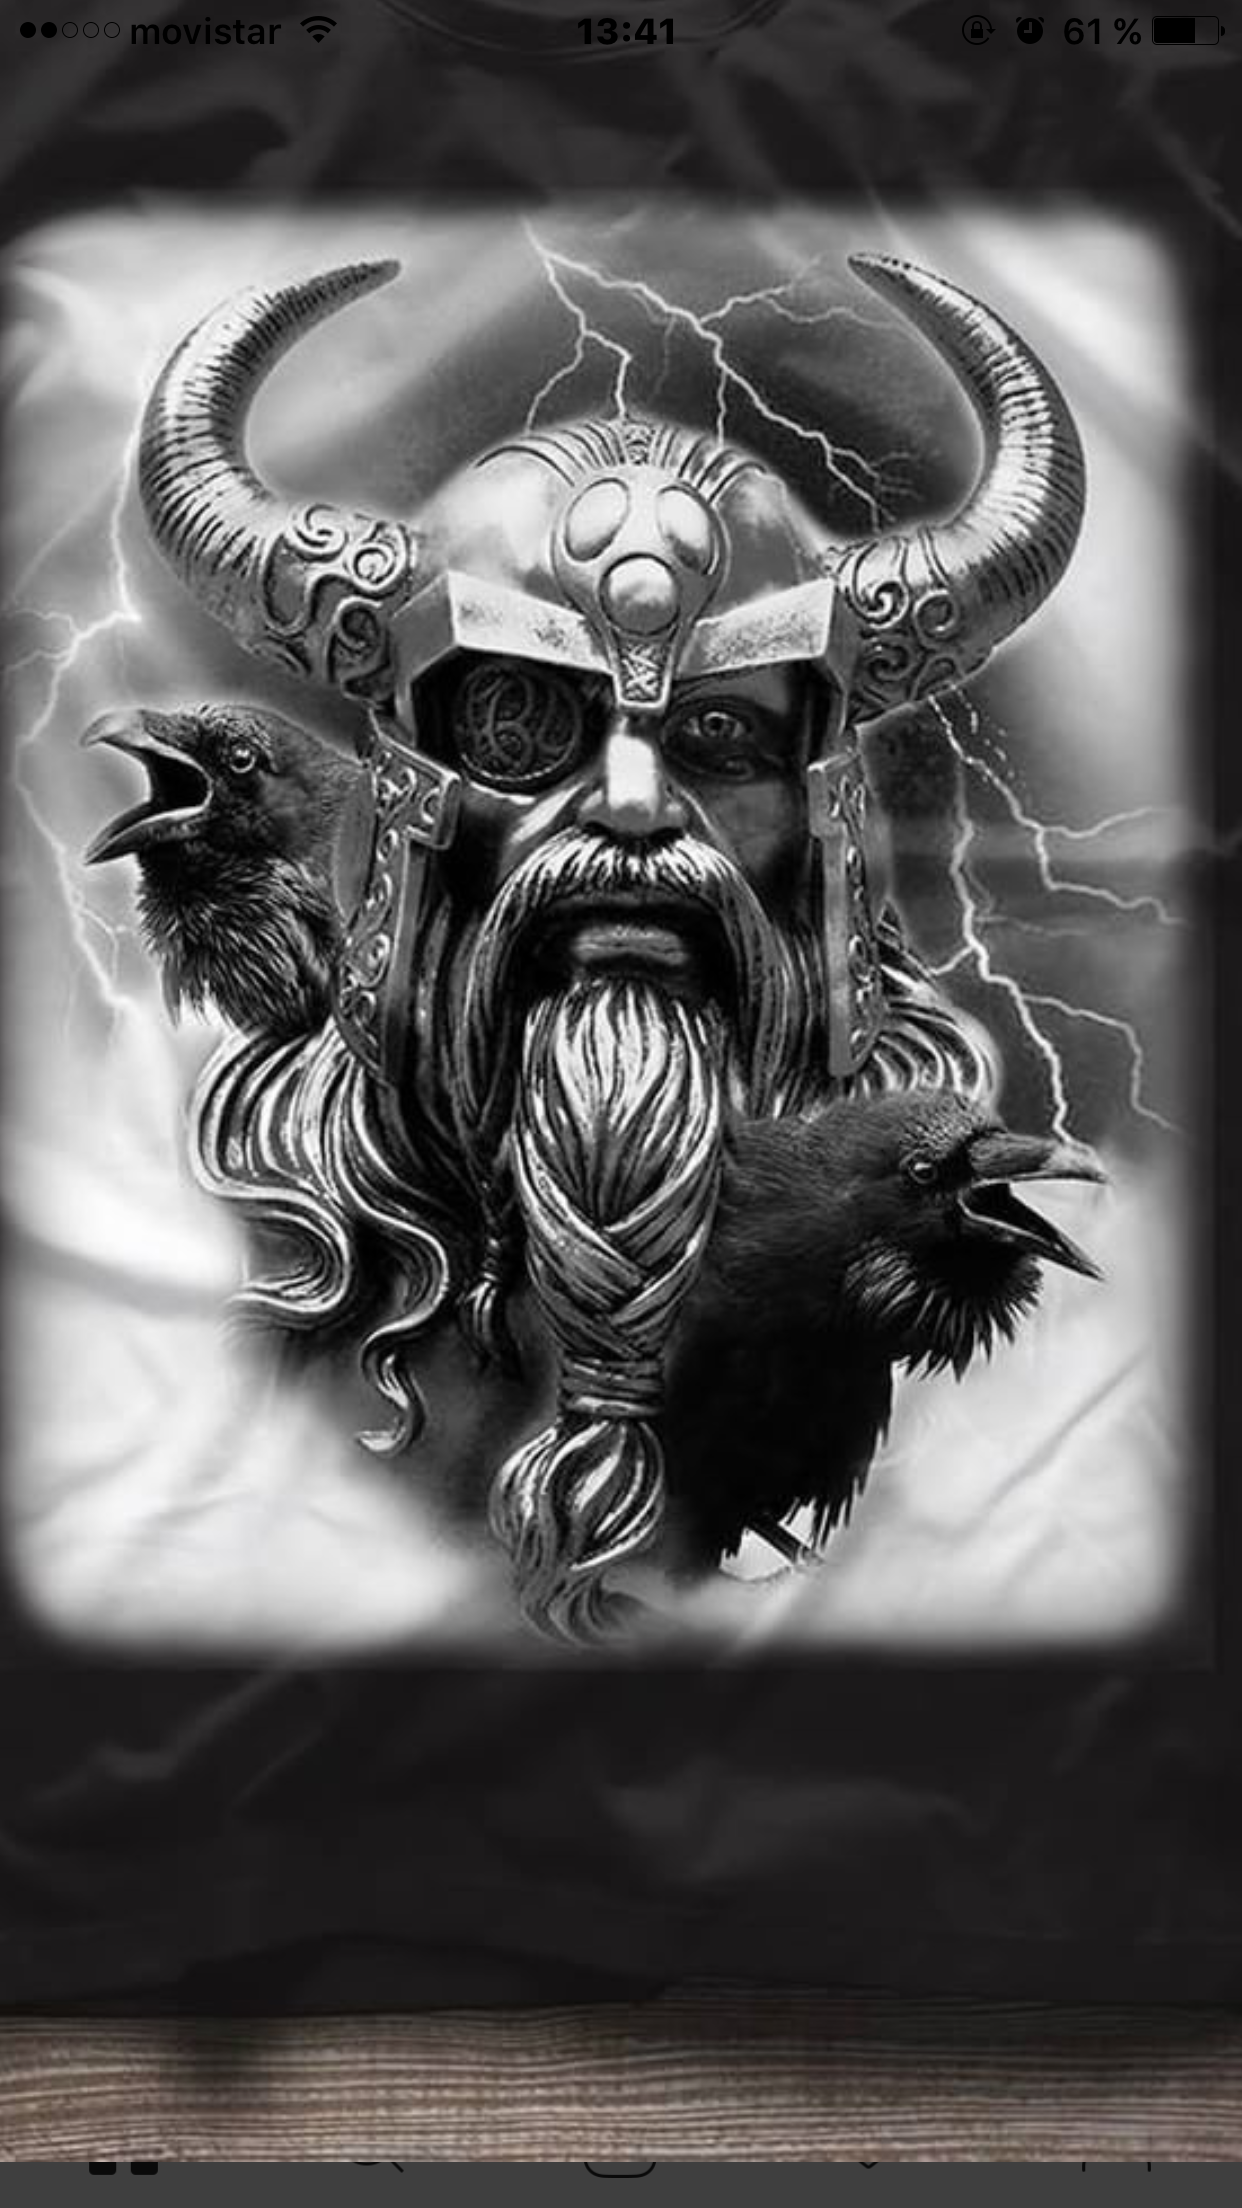 Pin by Matt Solemsaas on Tattoo ideas | Pinterest ...Norse Viking Tattoo Ideas